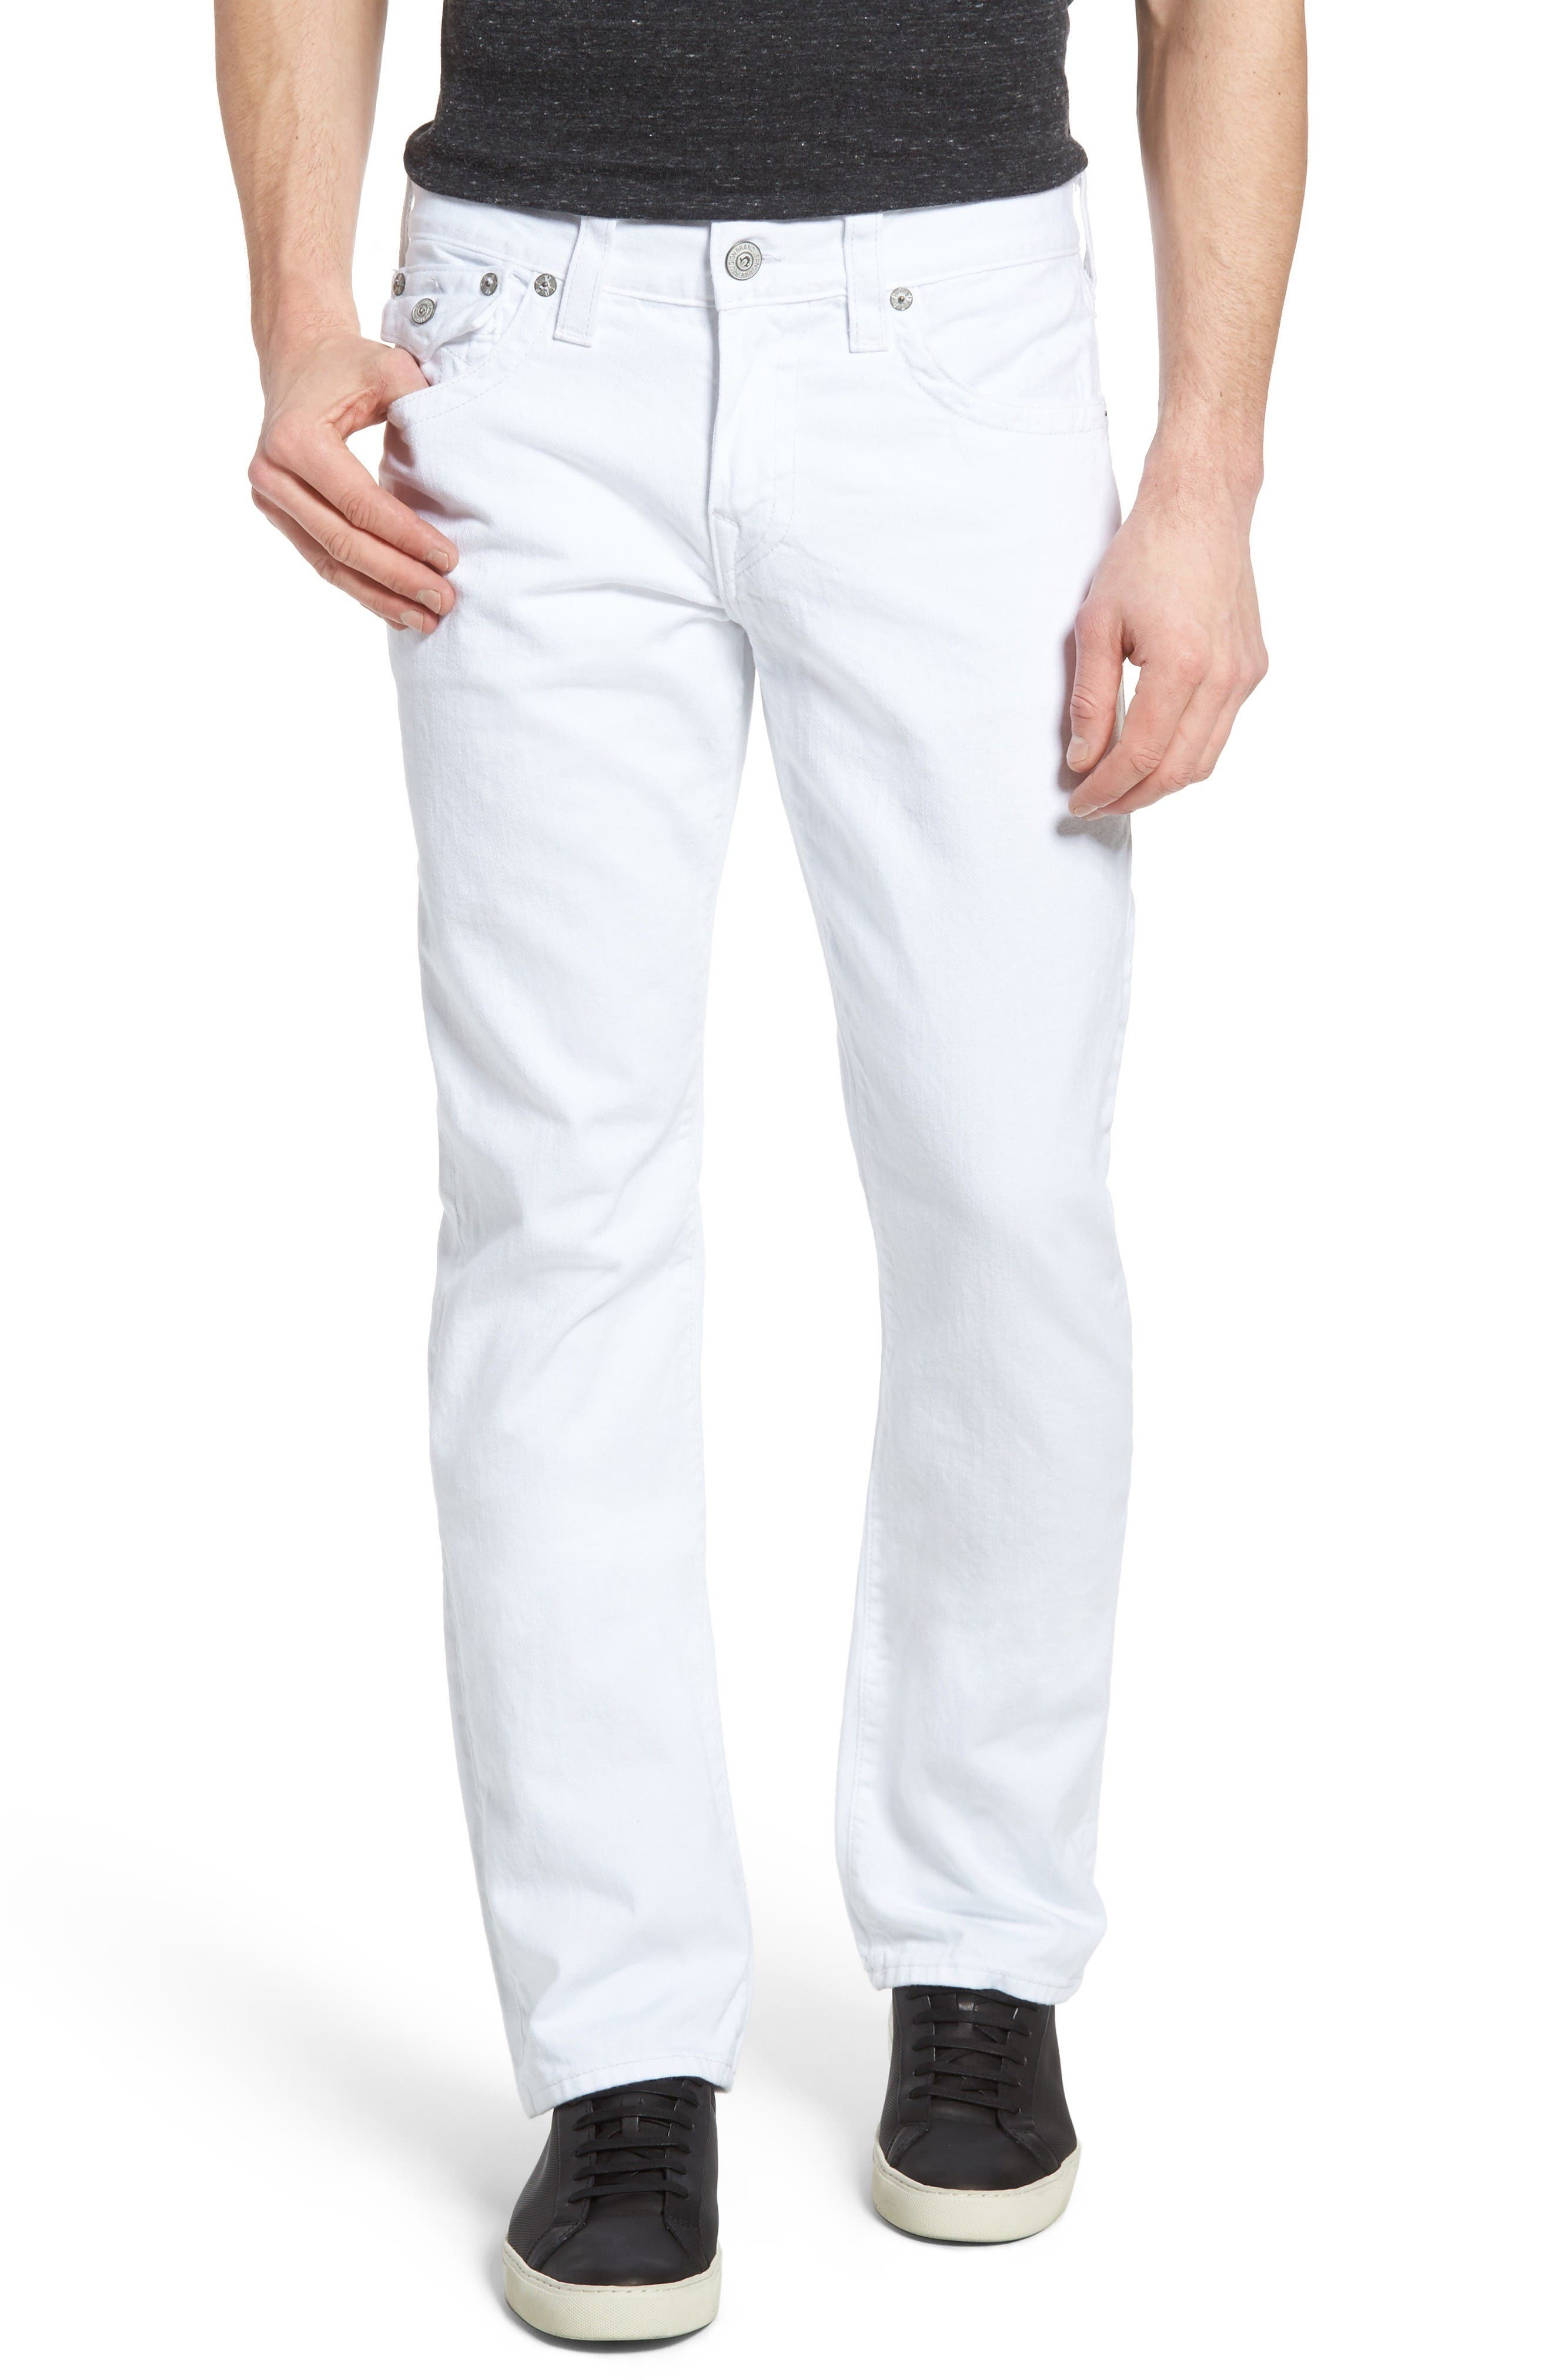 Alternate Image 1 Selected - True Religion Brand Jeans Ricky Relaxed Fit Jeans (Optic White) (Regular & Big)